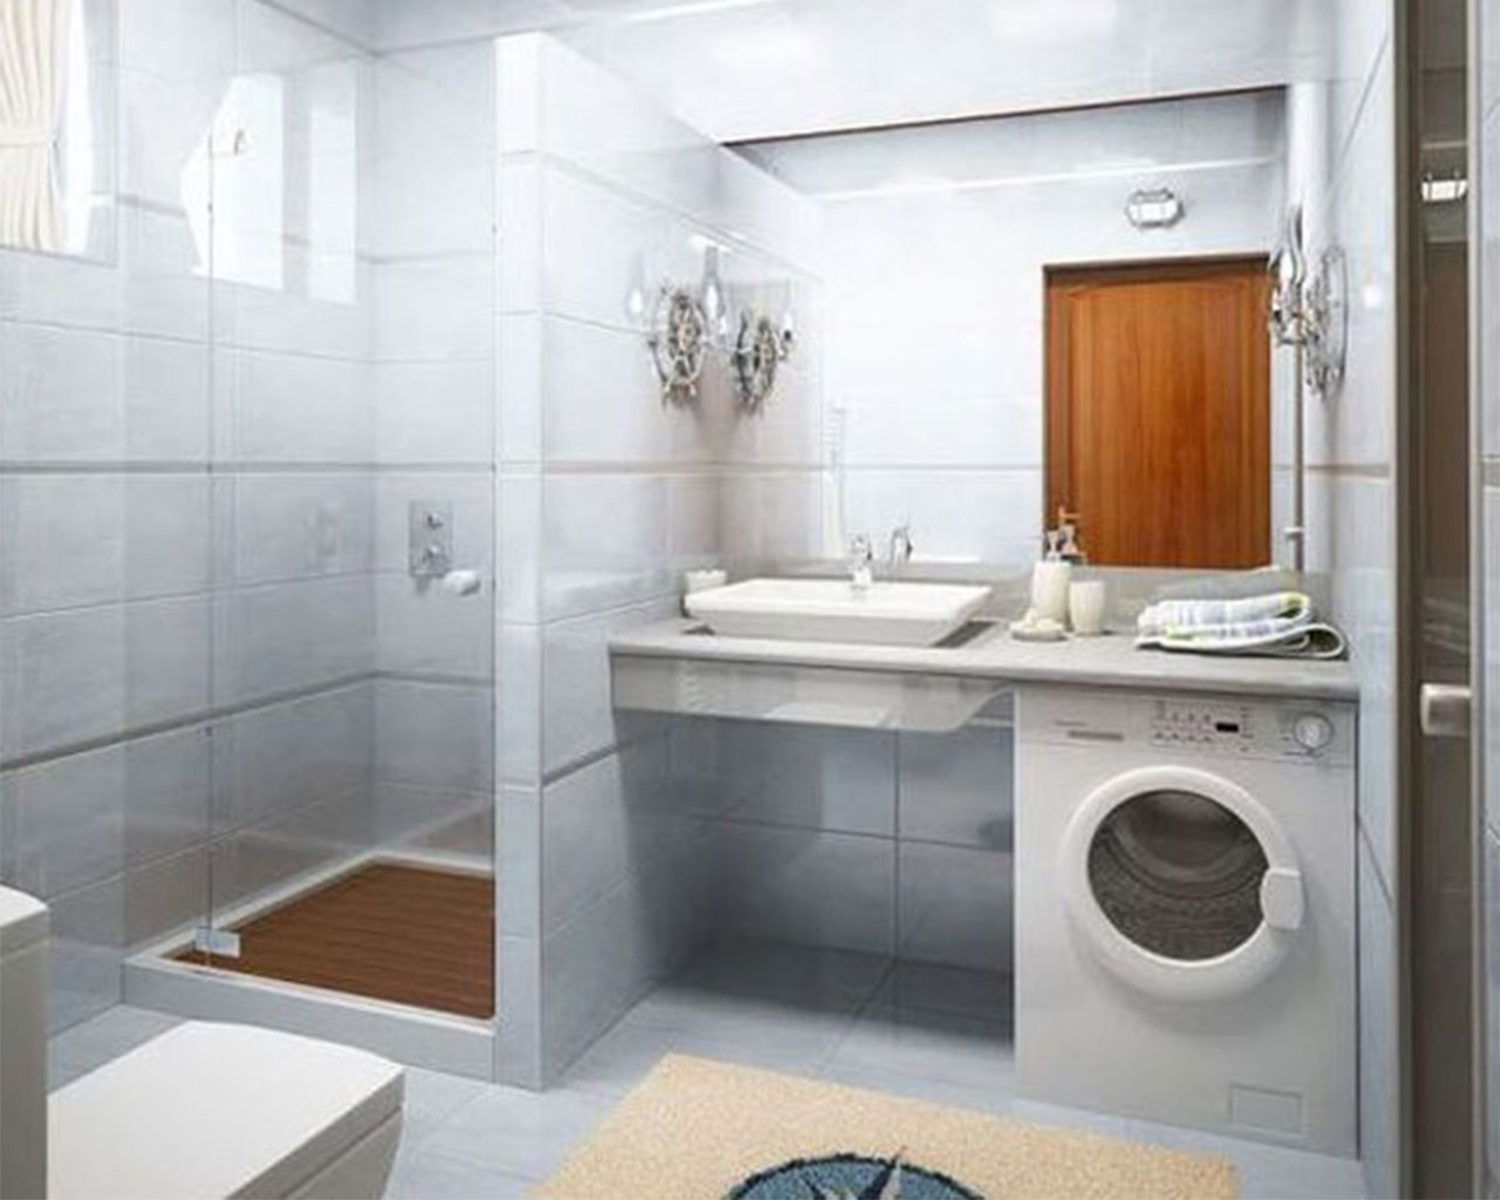 Simple Bathroom Design Idea With Washing Machine